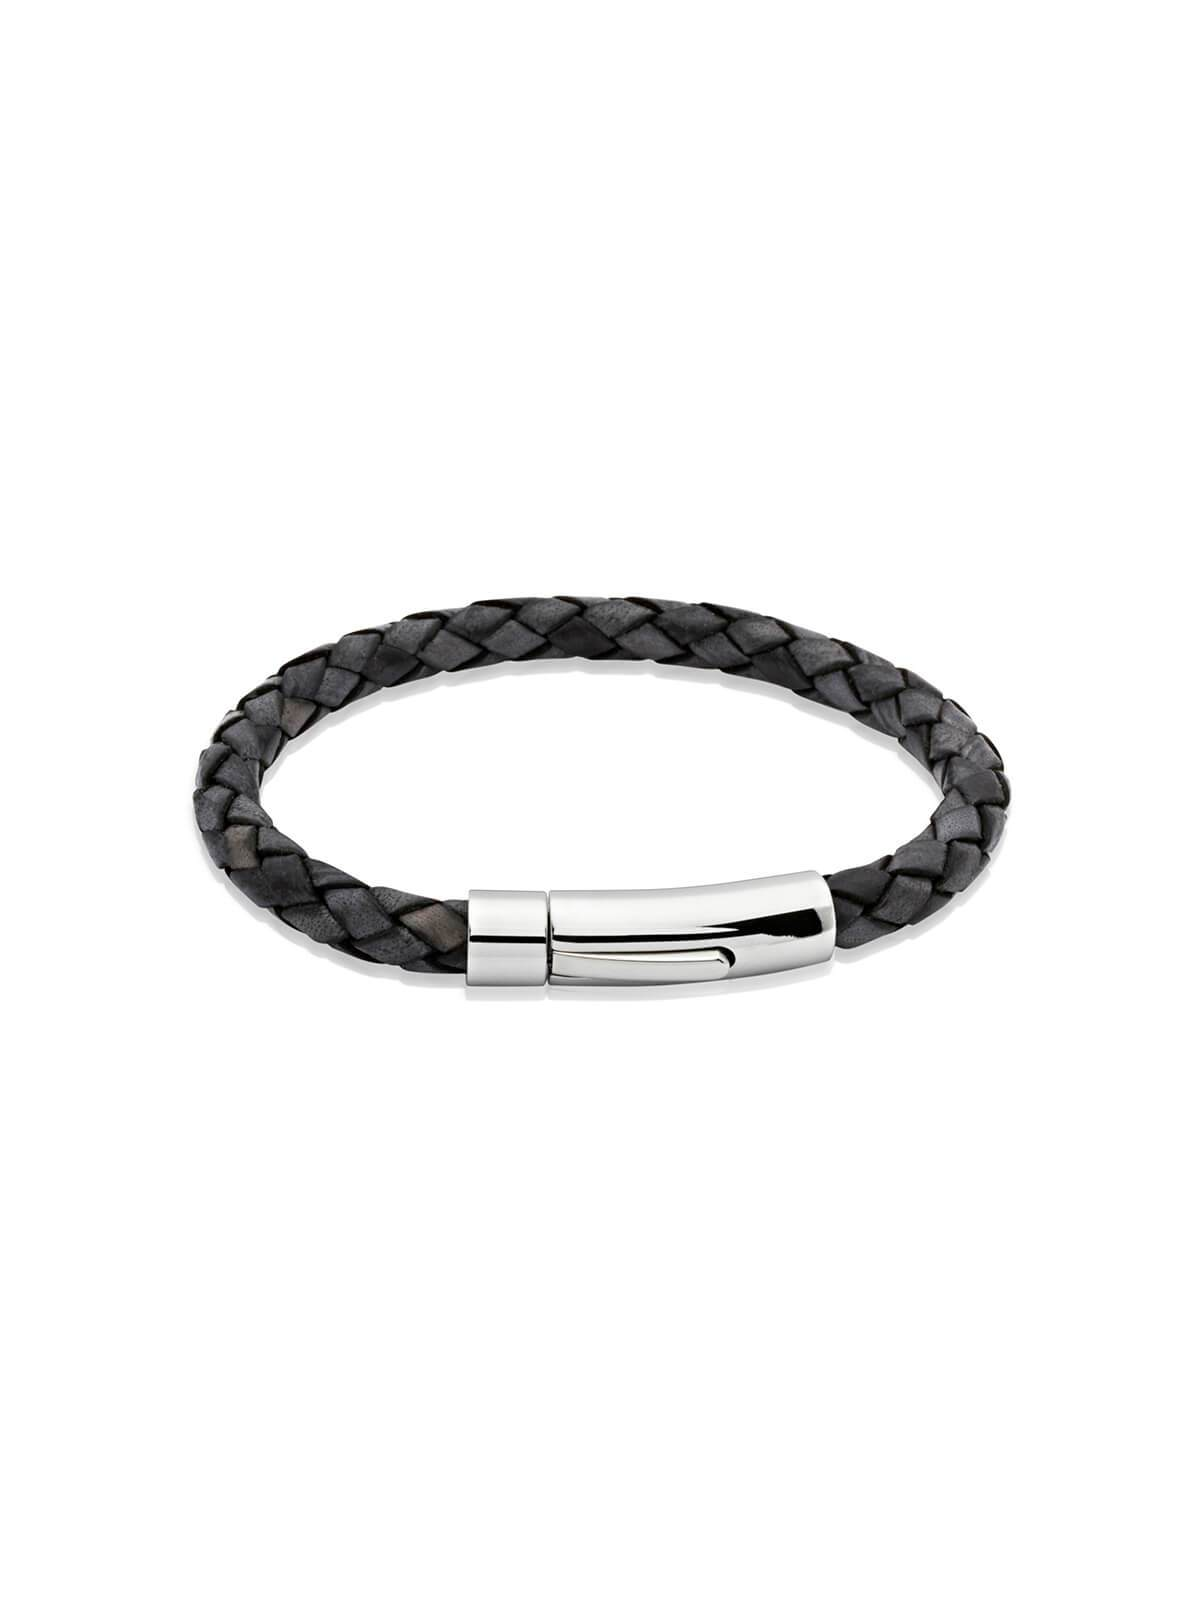 Unique & Co. 23cm Antique Black Leather Bracelet A40ABL/23CM